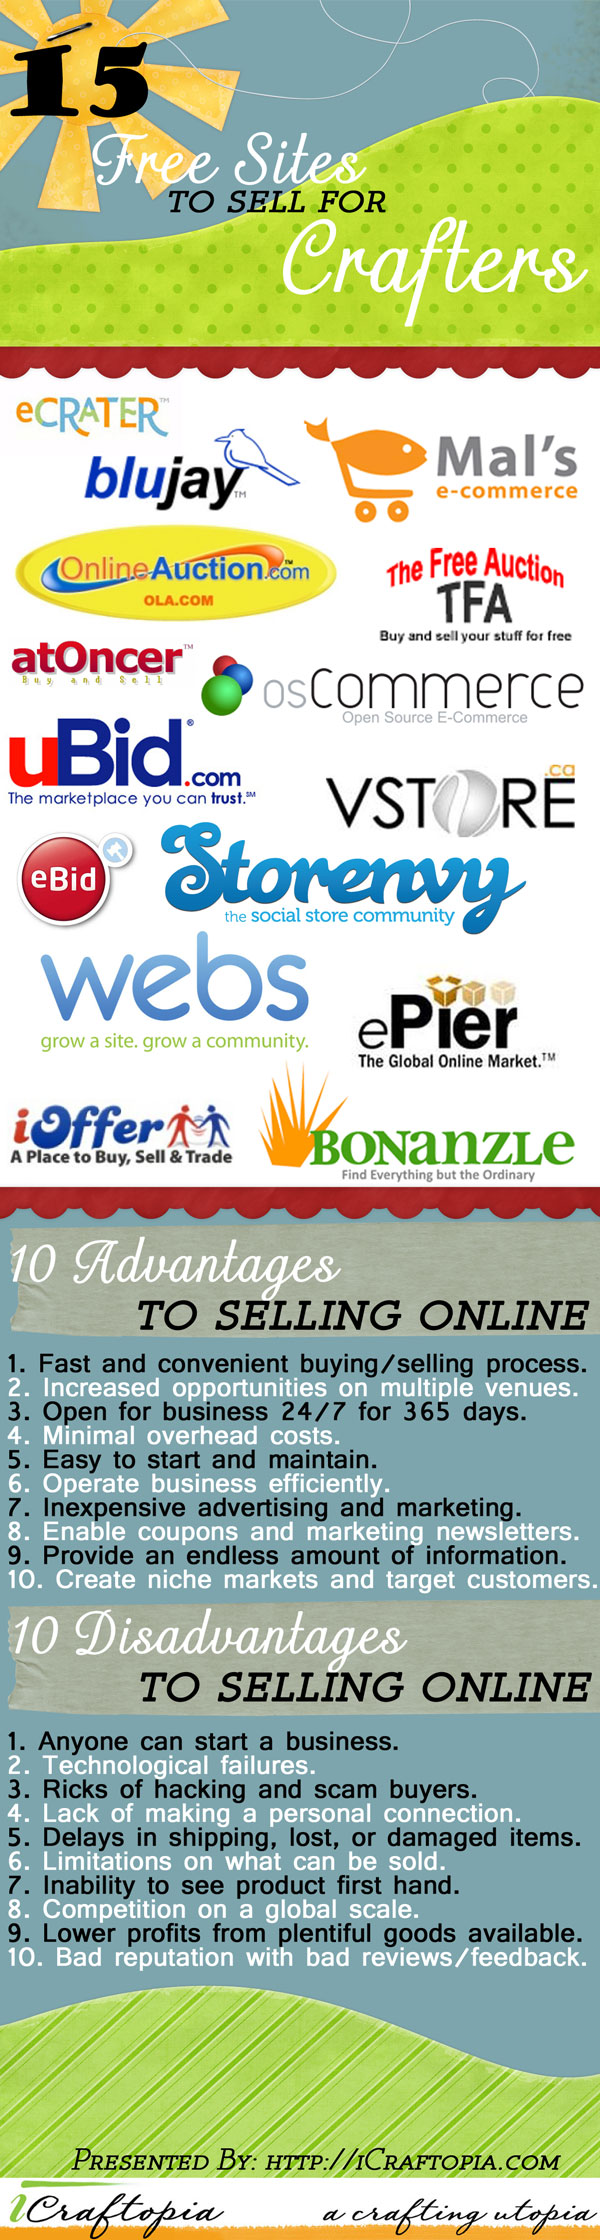 15-Free-Sites-to-Sell-for-Crafters-Infographic